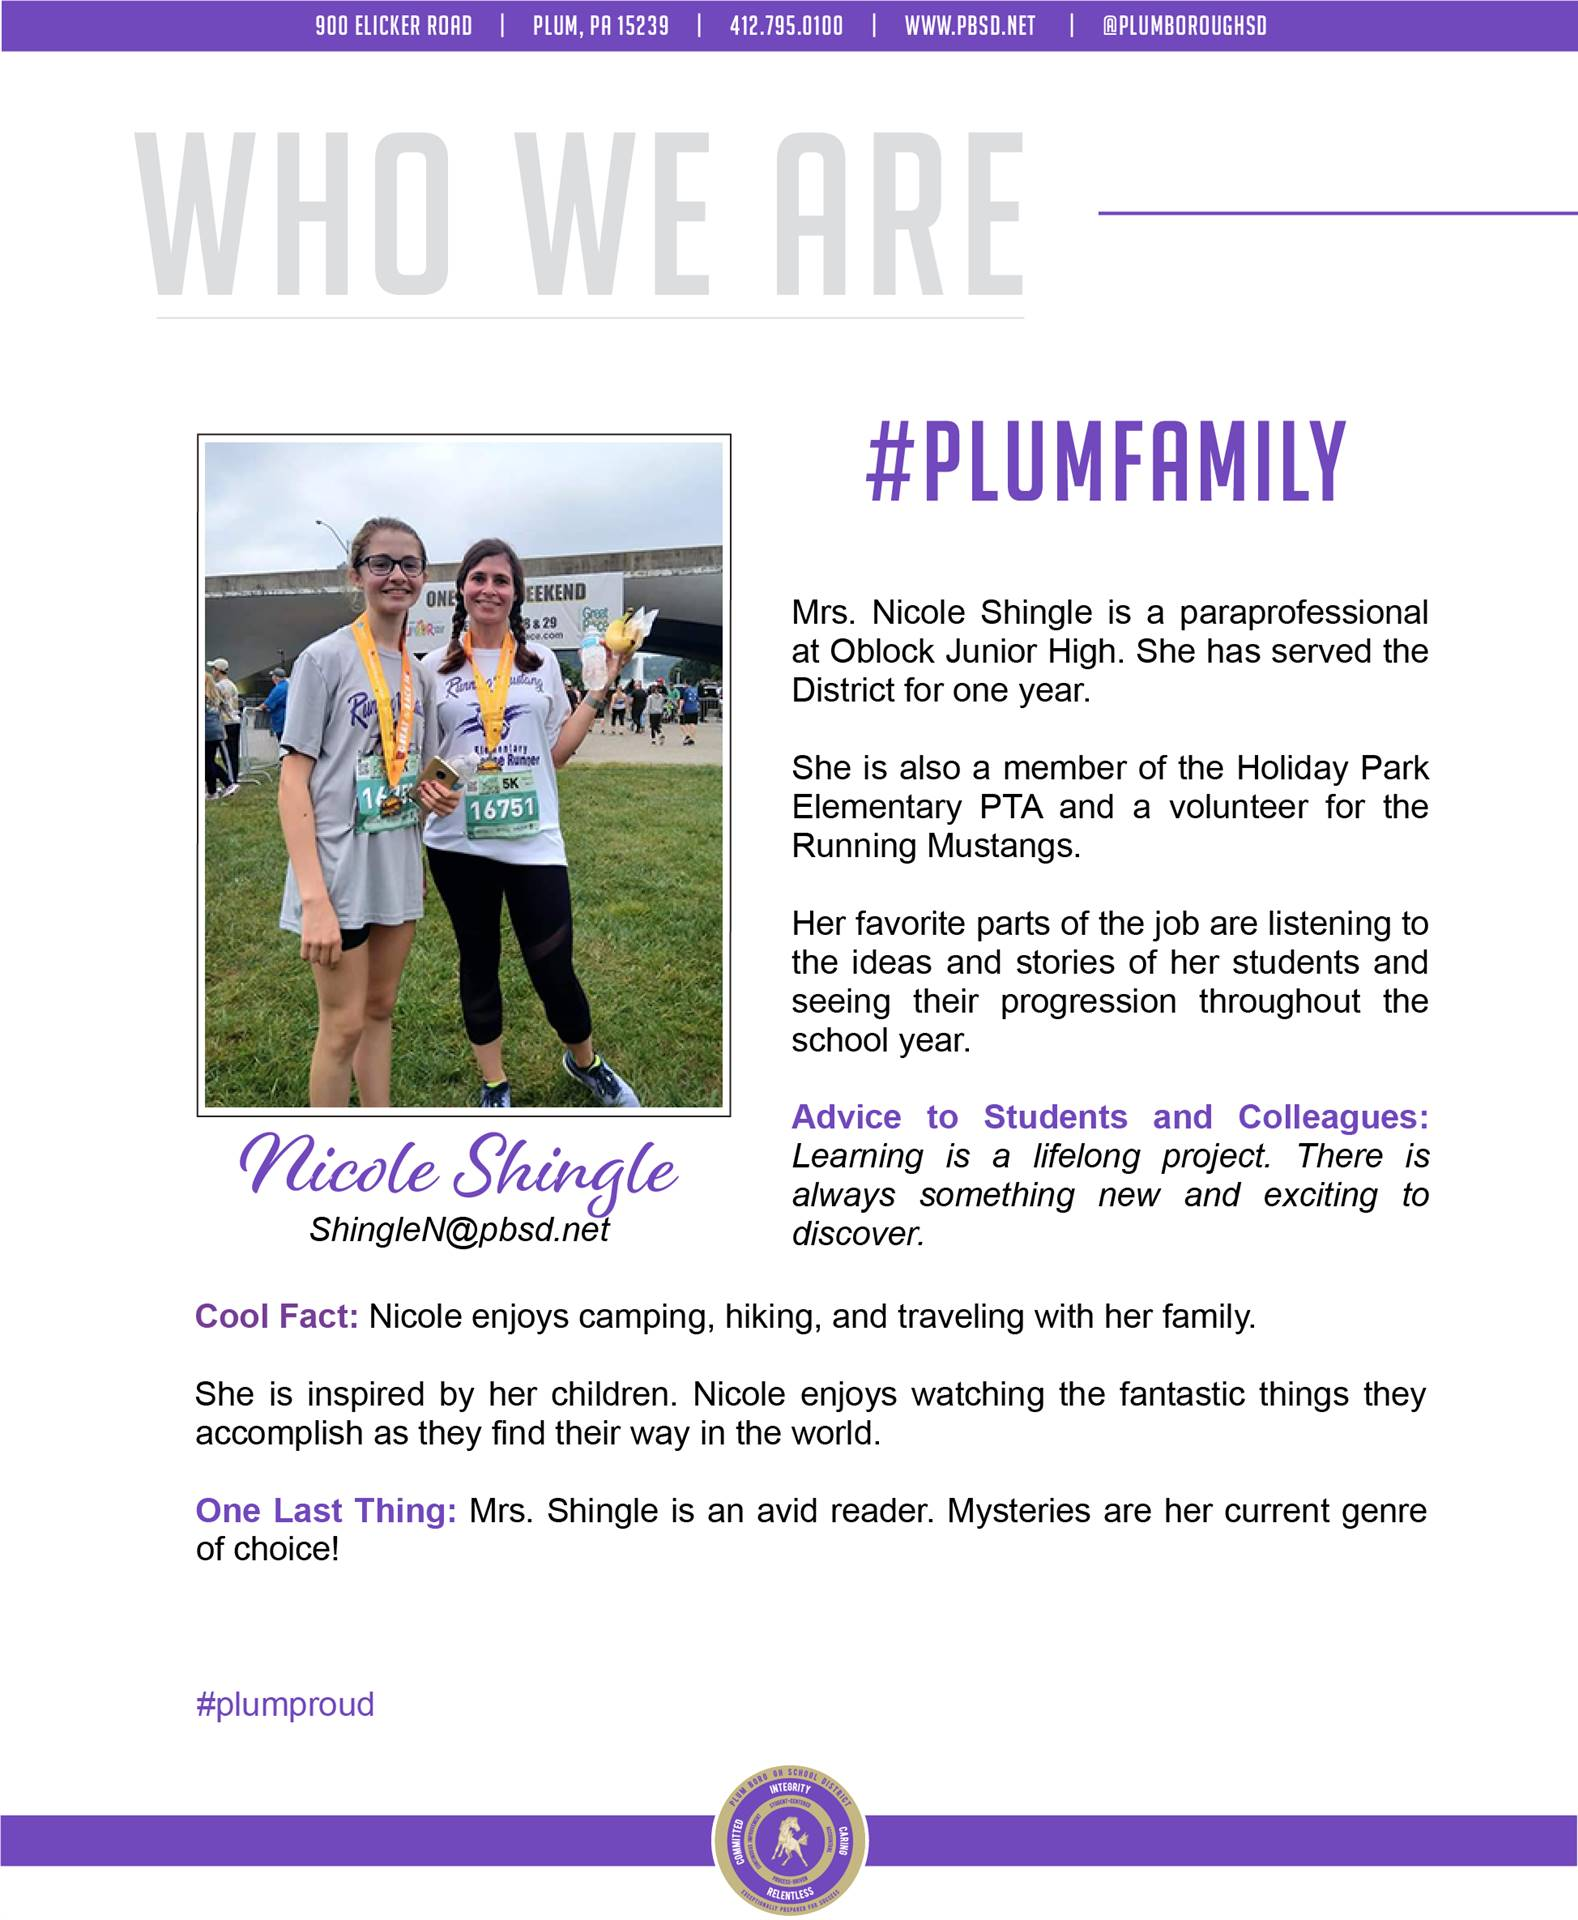 Who We Are Wednesday features Nicole Shingle.